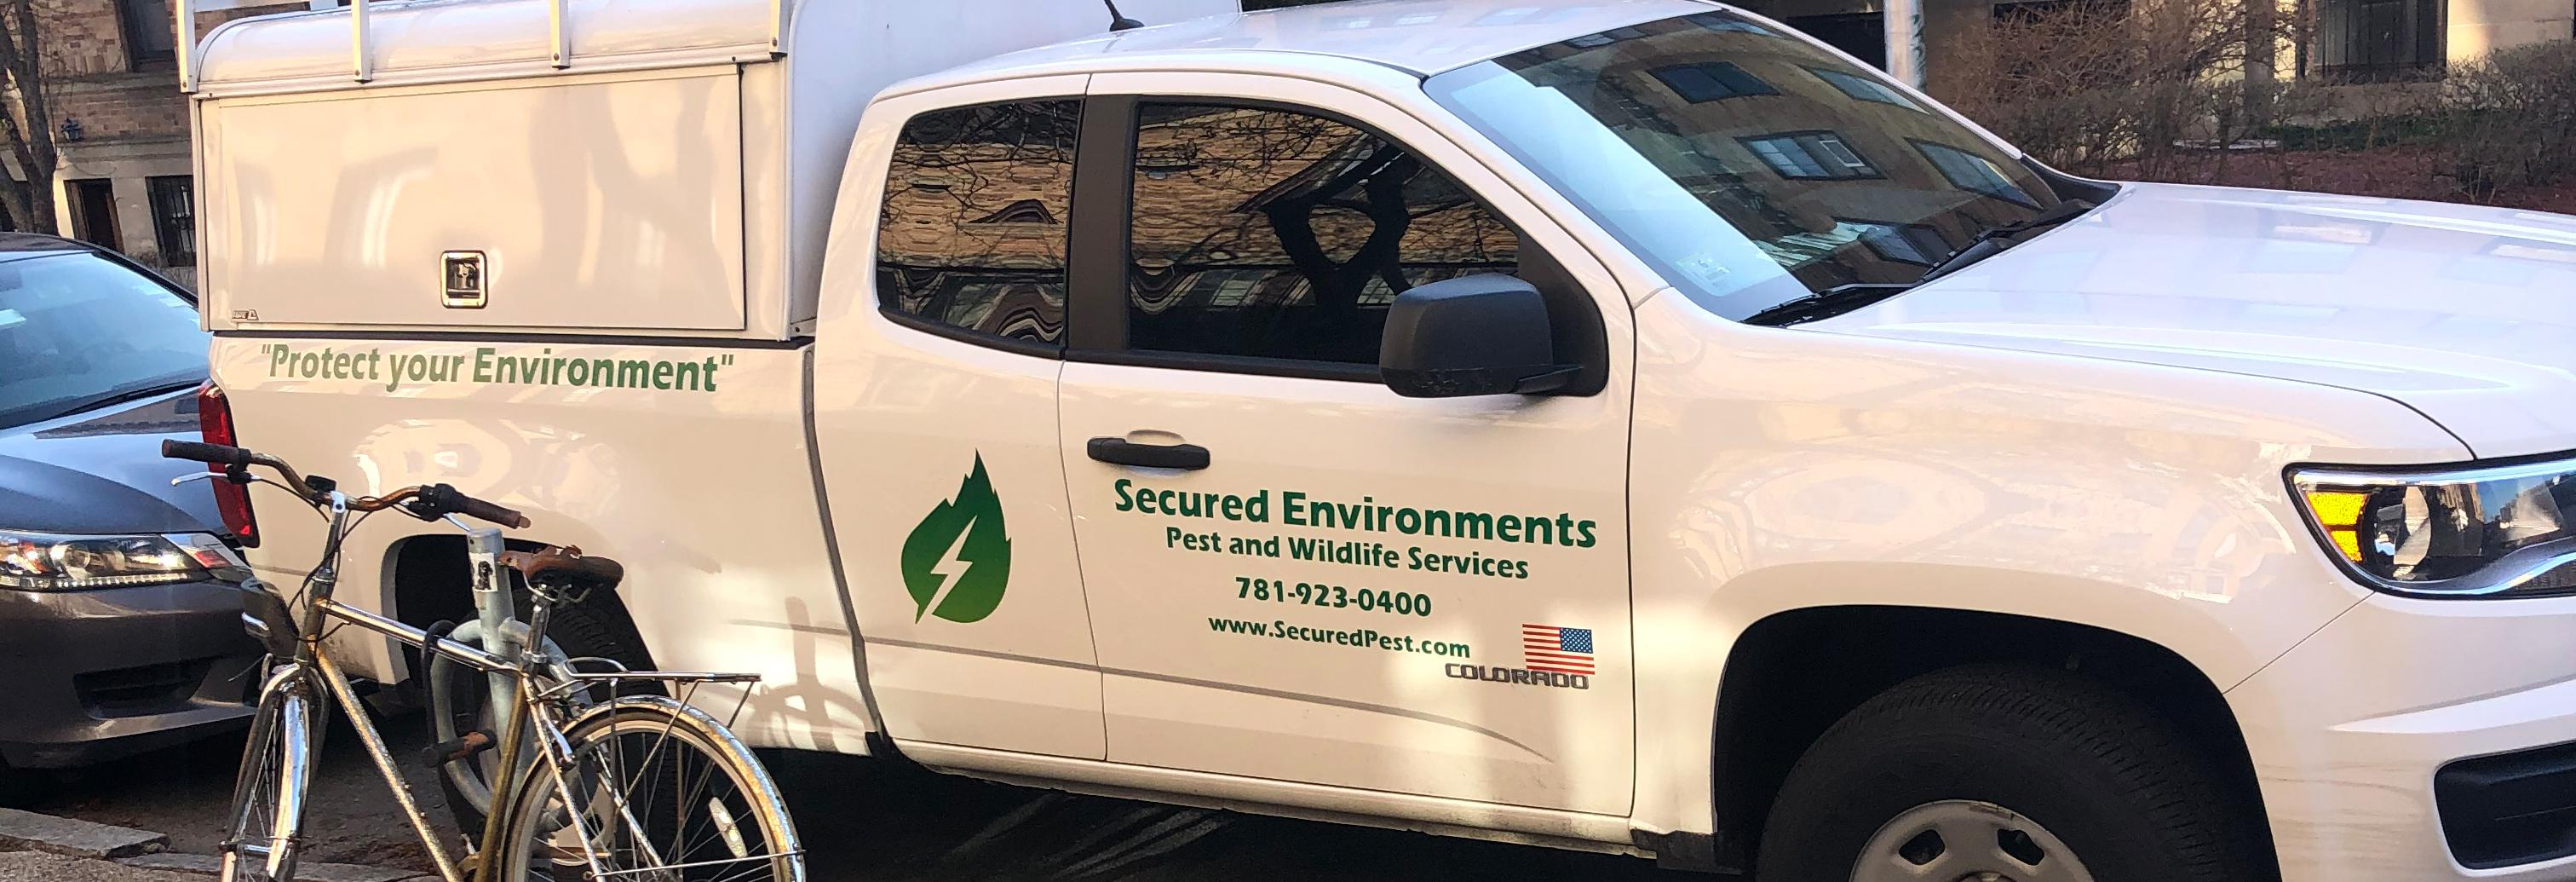 Hire a  professional to solve your pest or wildlife problem.